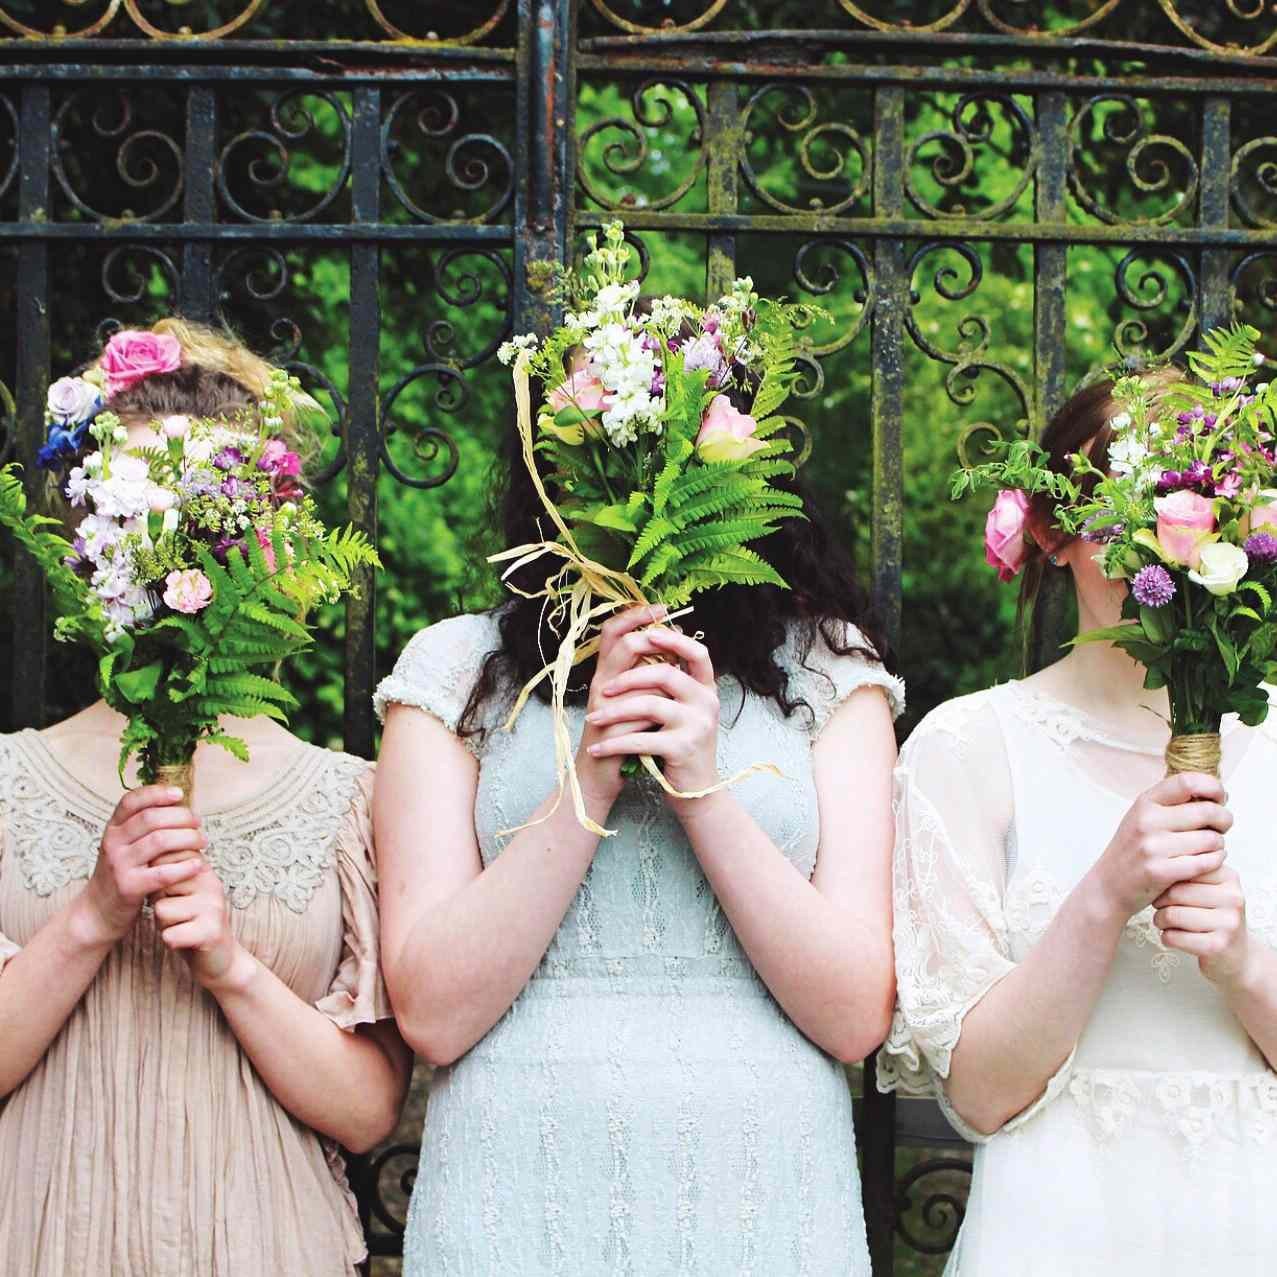 acedfbc190 What Your Bridal Party Should and Shouldn't Pay For